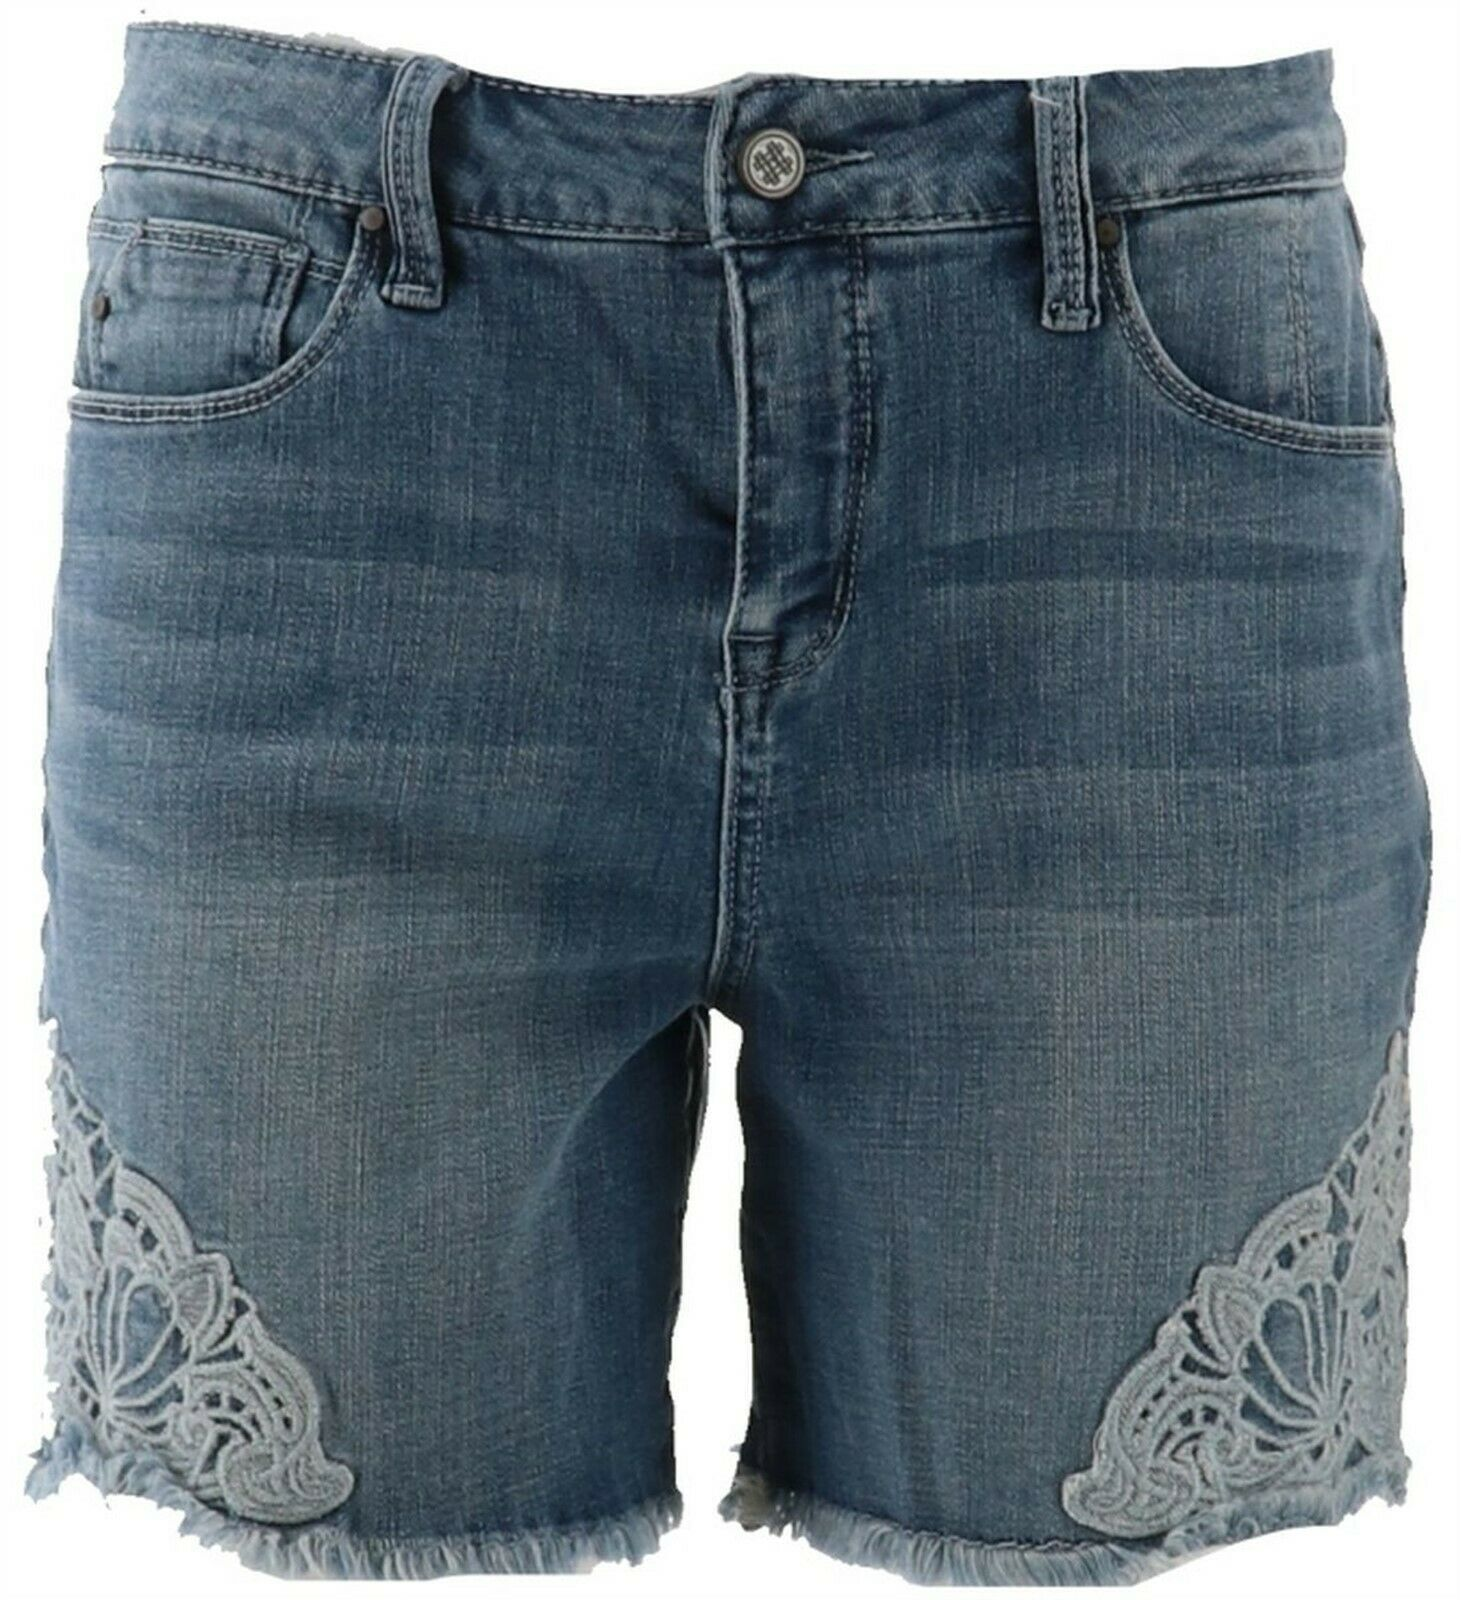 Primary image for Laurie Felt Denim Weekender Shorts Crochets Brushed Varsity 16 NEW A352675